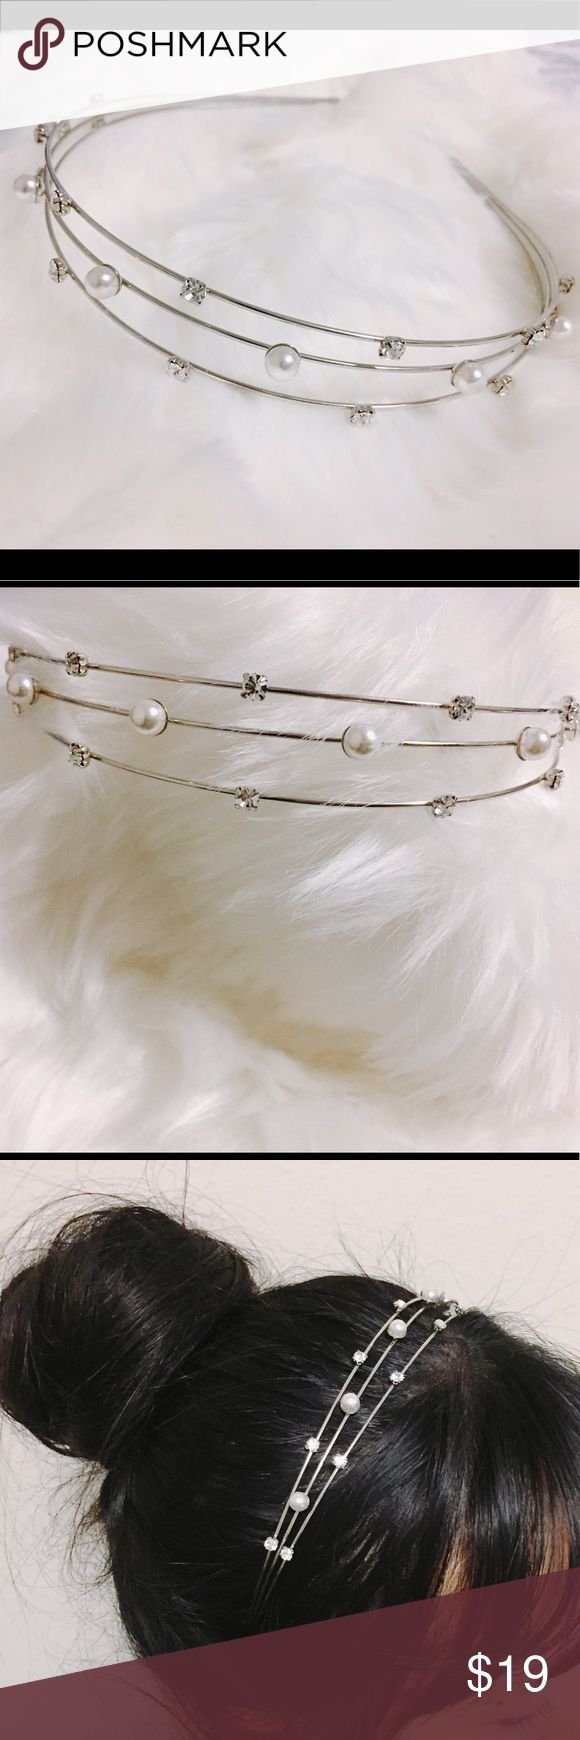 NEW JEWELED TRIPLE LAYER HEADBAND NEW JEWELED TRIPLE LAYER HEADBAND. Excellent condition, no missing stones or pearls. Stainless steel triple layer with faux pearls and cubic details. Feel free to ask any questions if you have. Thank you Accessories Hair Accessories